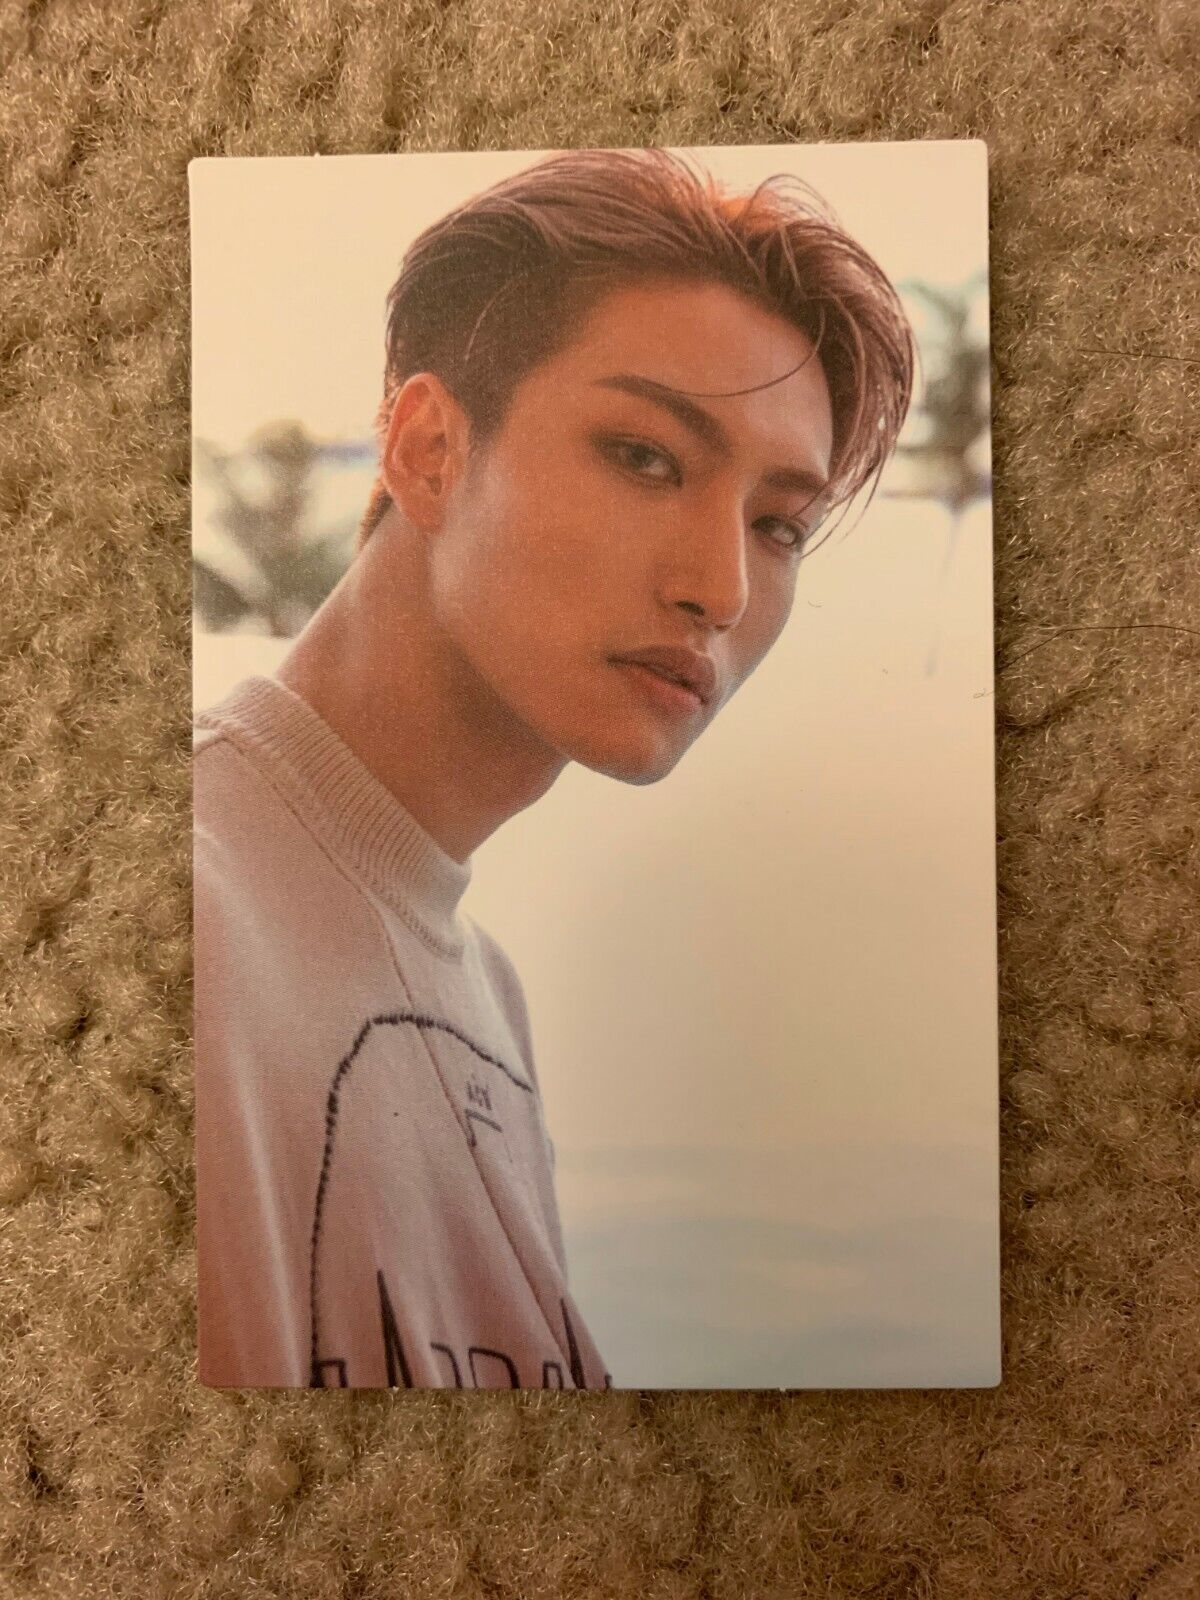 ***UPDATED***ATEEZ One To All Treasure EP. 3 Photocards (DM for Stamp Shipping) Seonghwa Wave MMT